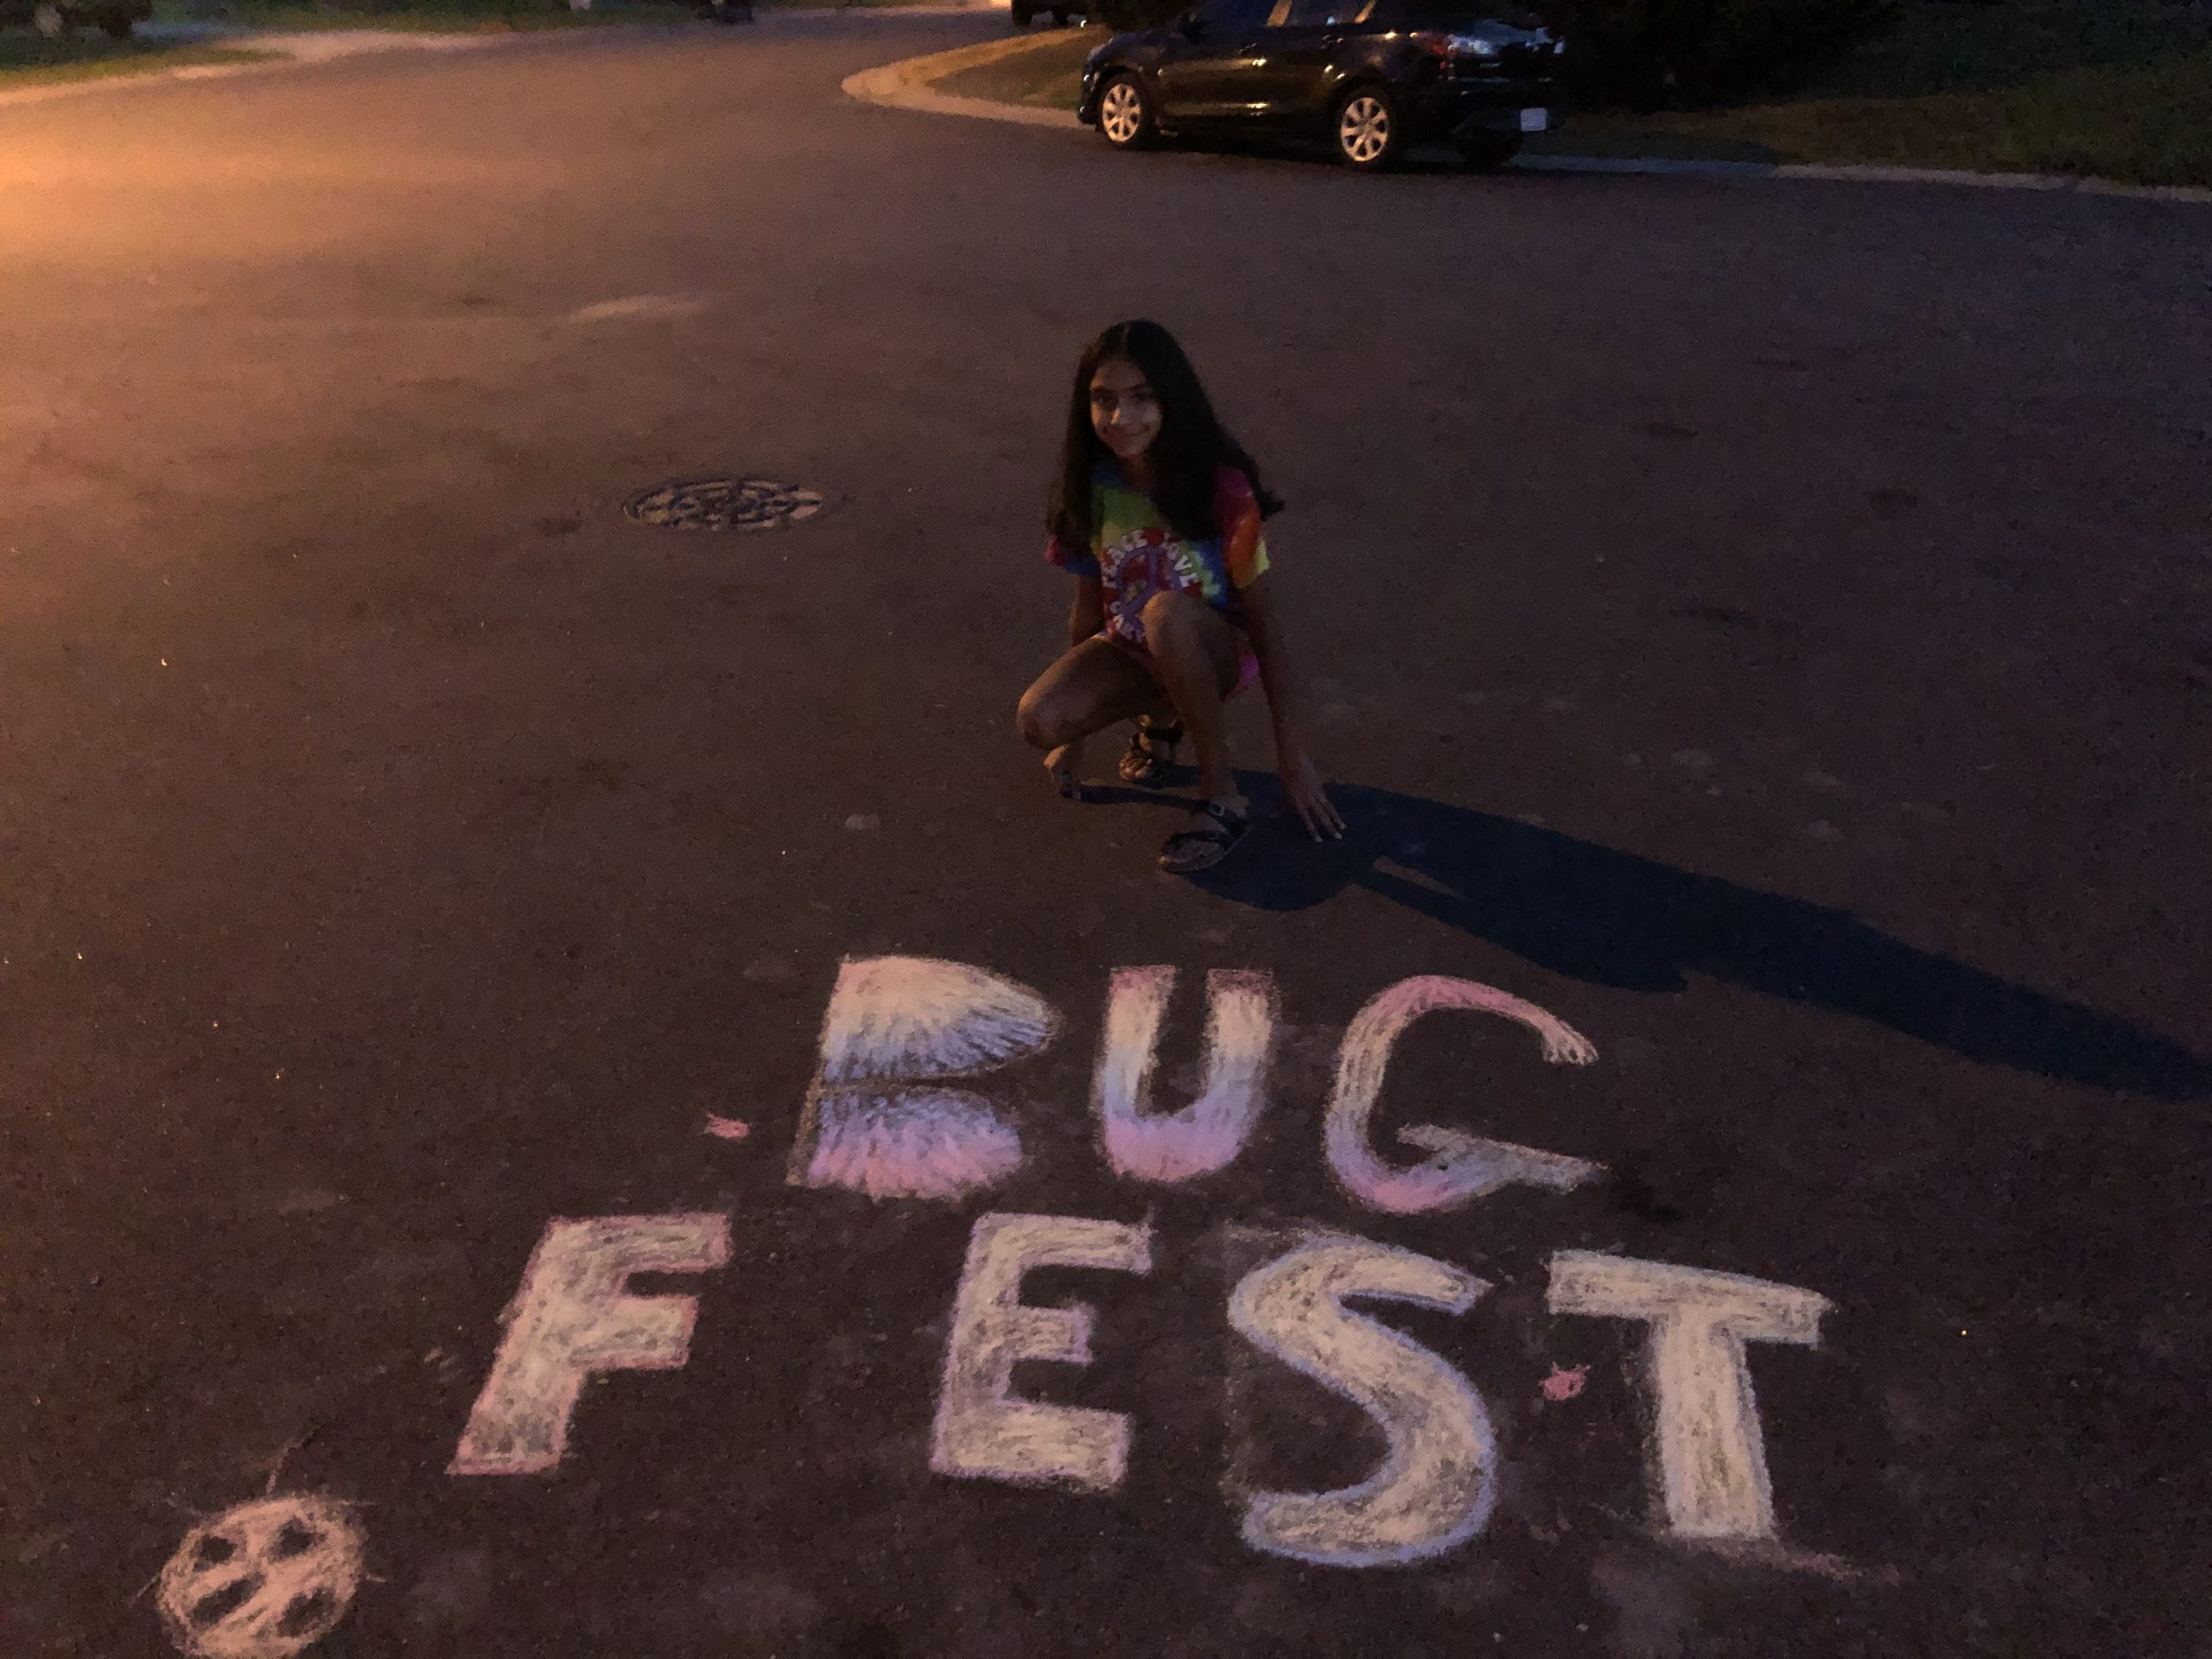 Pink BugFest and a young girl